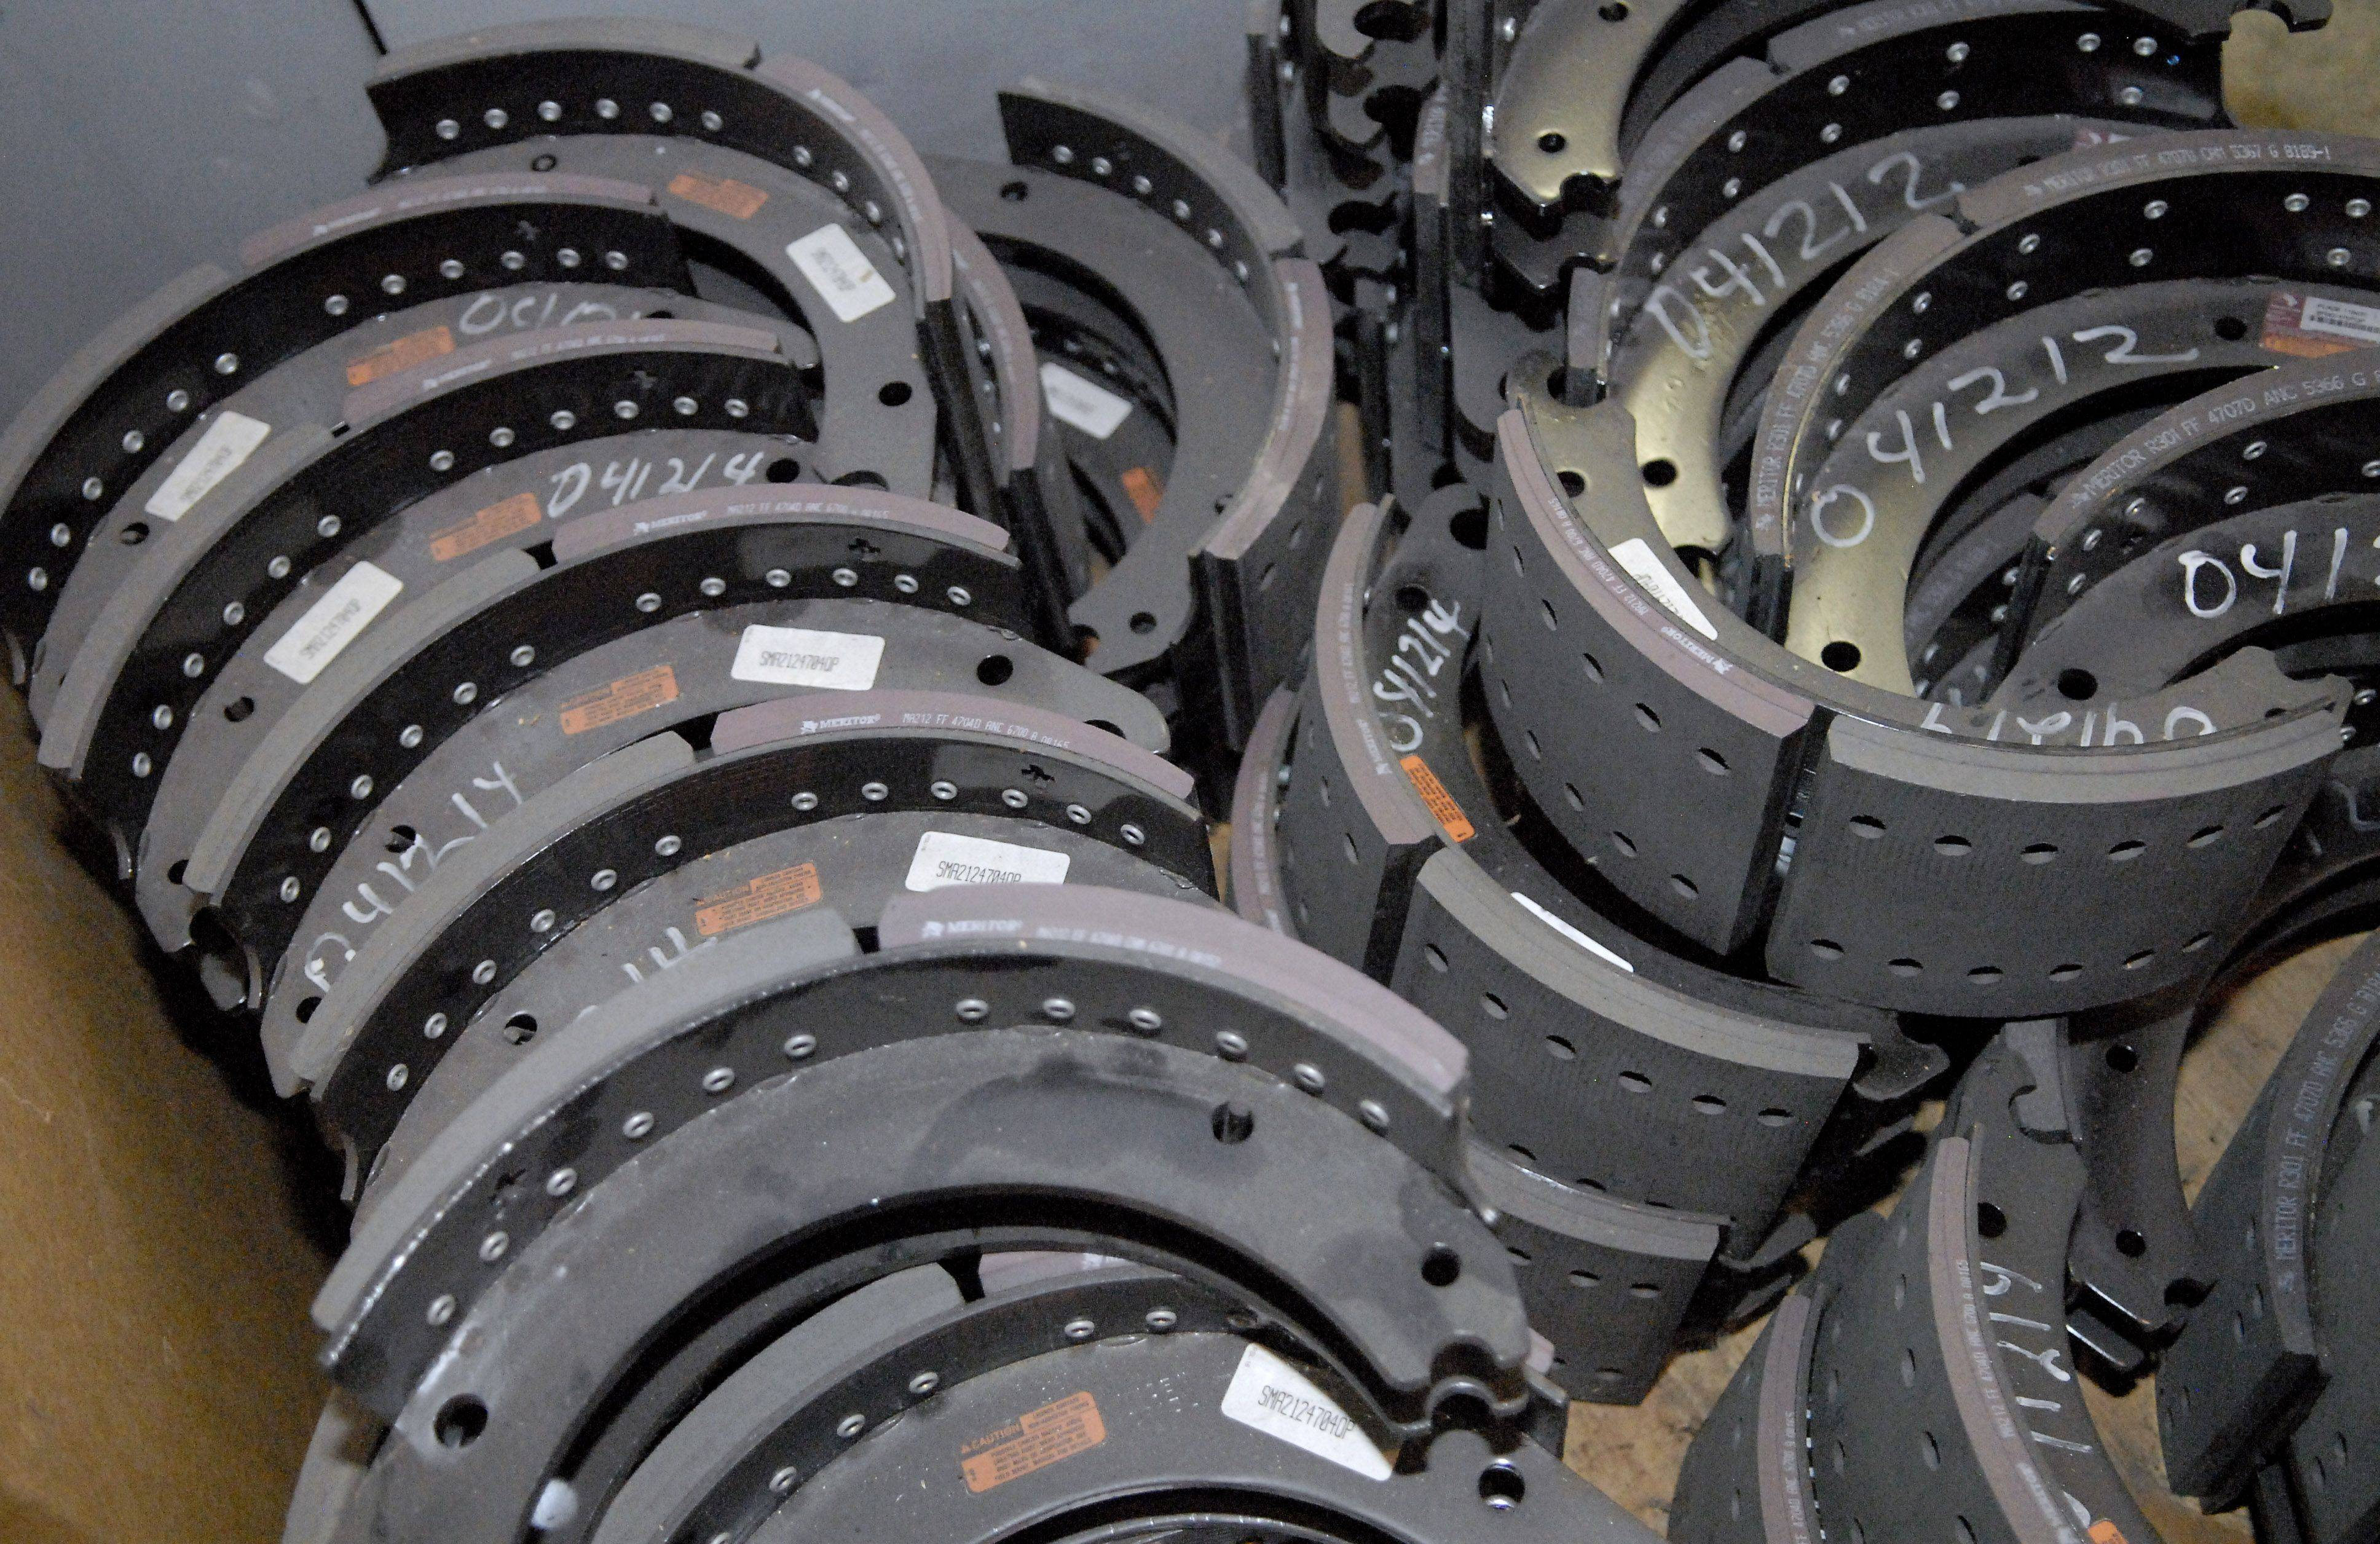 Brake shoes are neatly stacked ready to be used in the stock room of the Elgin Pace Bus garage.